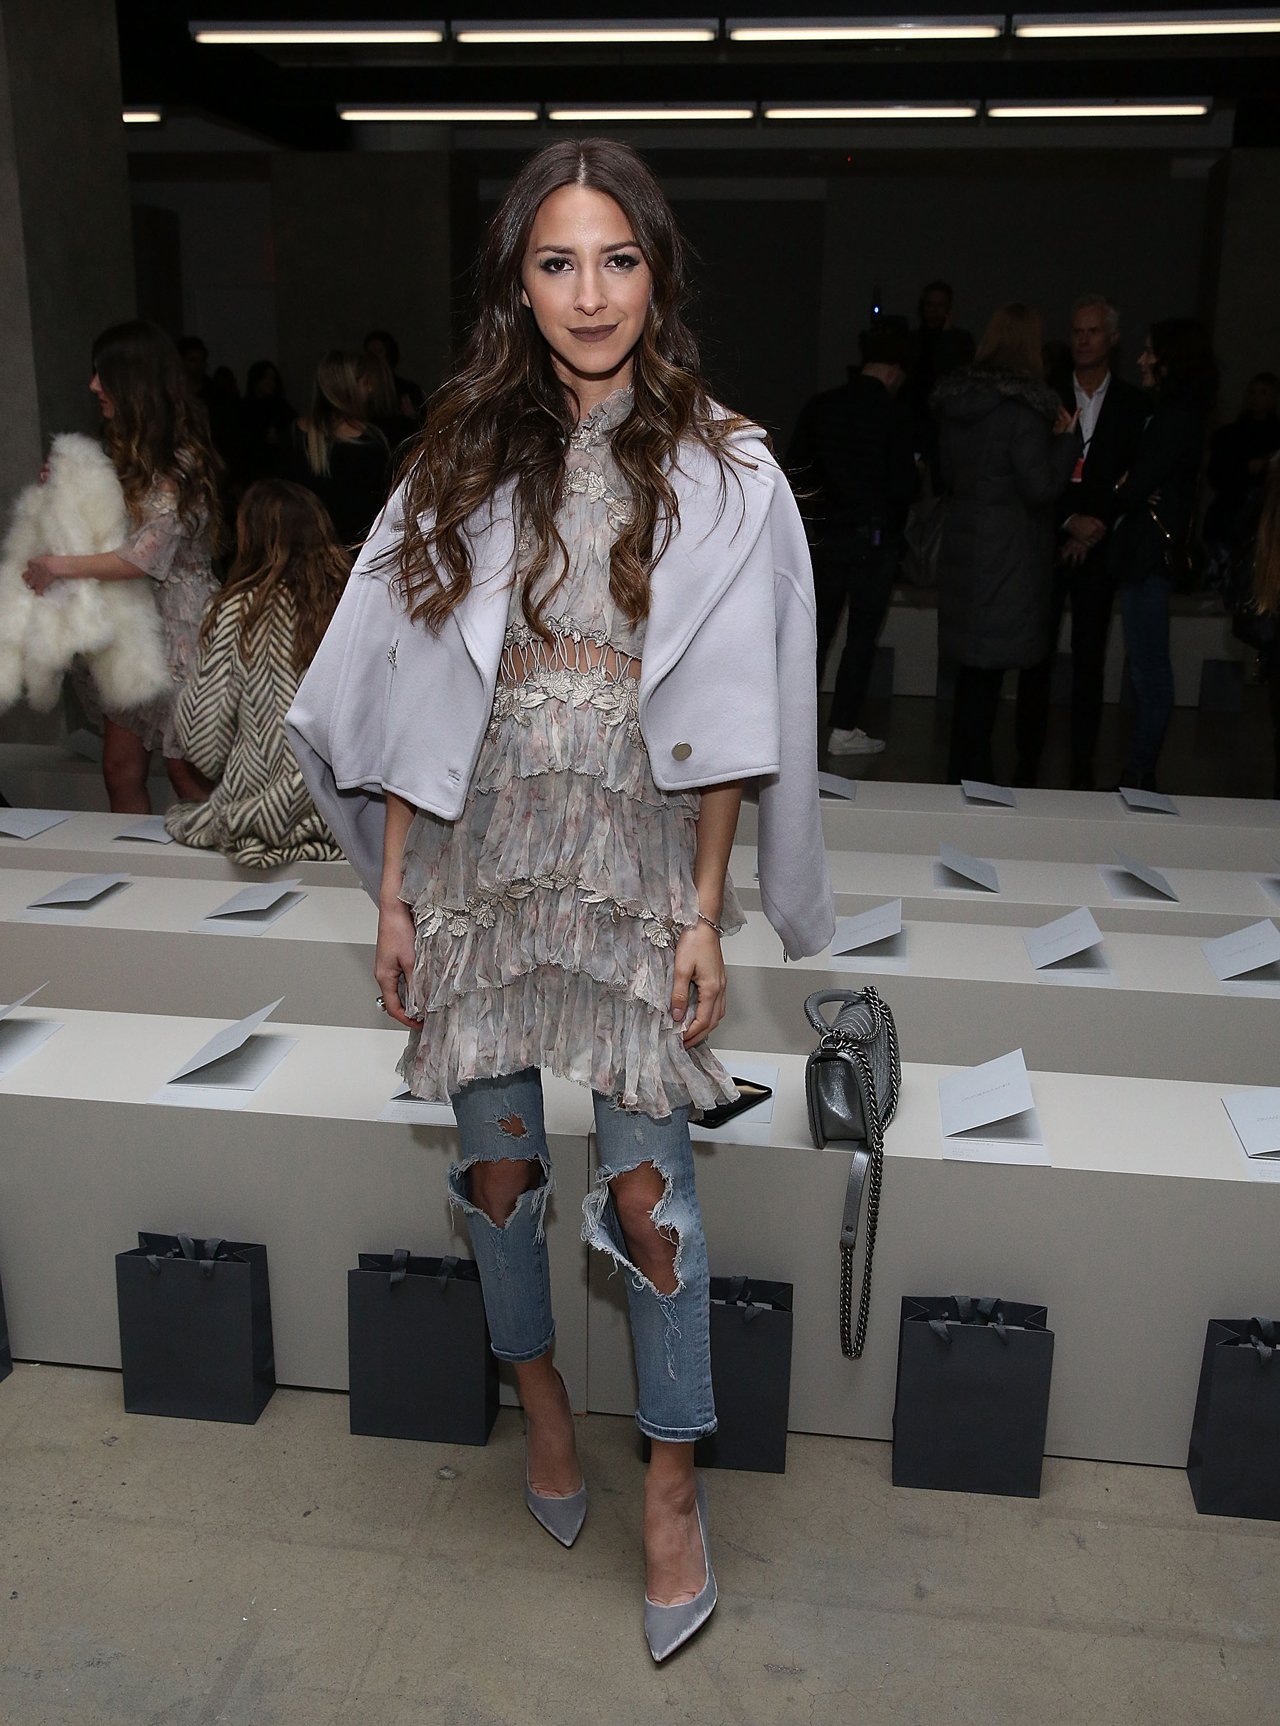 5d86682cef8e Influencer Arielle Noa from Something Navy (with 972K followers and  counting) wore Zimmermann's Stranded Tier Mini Dress (SHOP NOW).